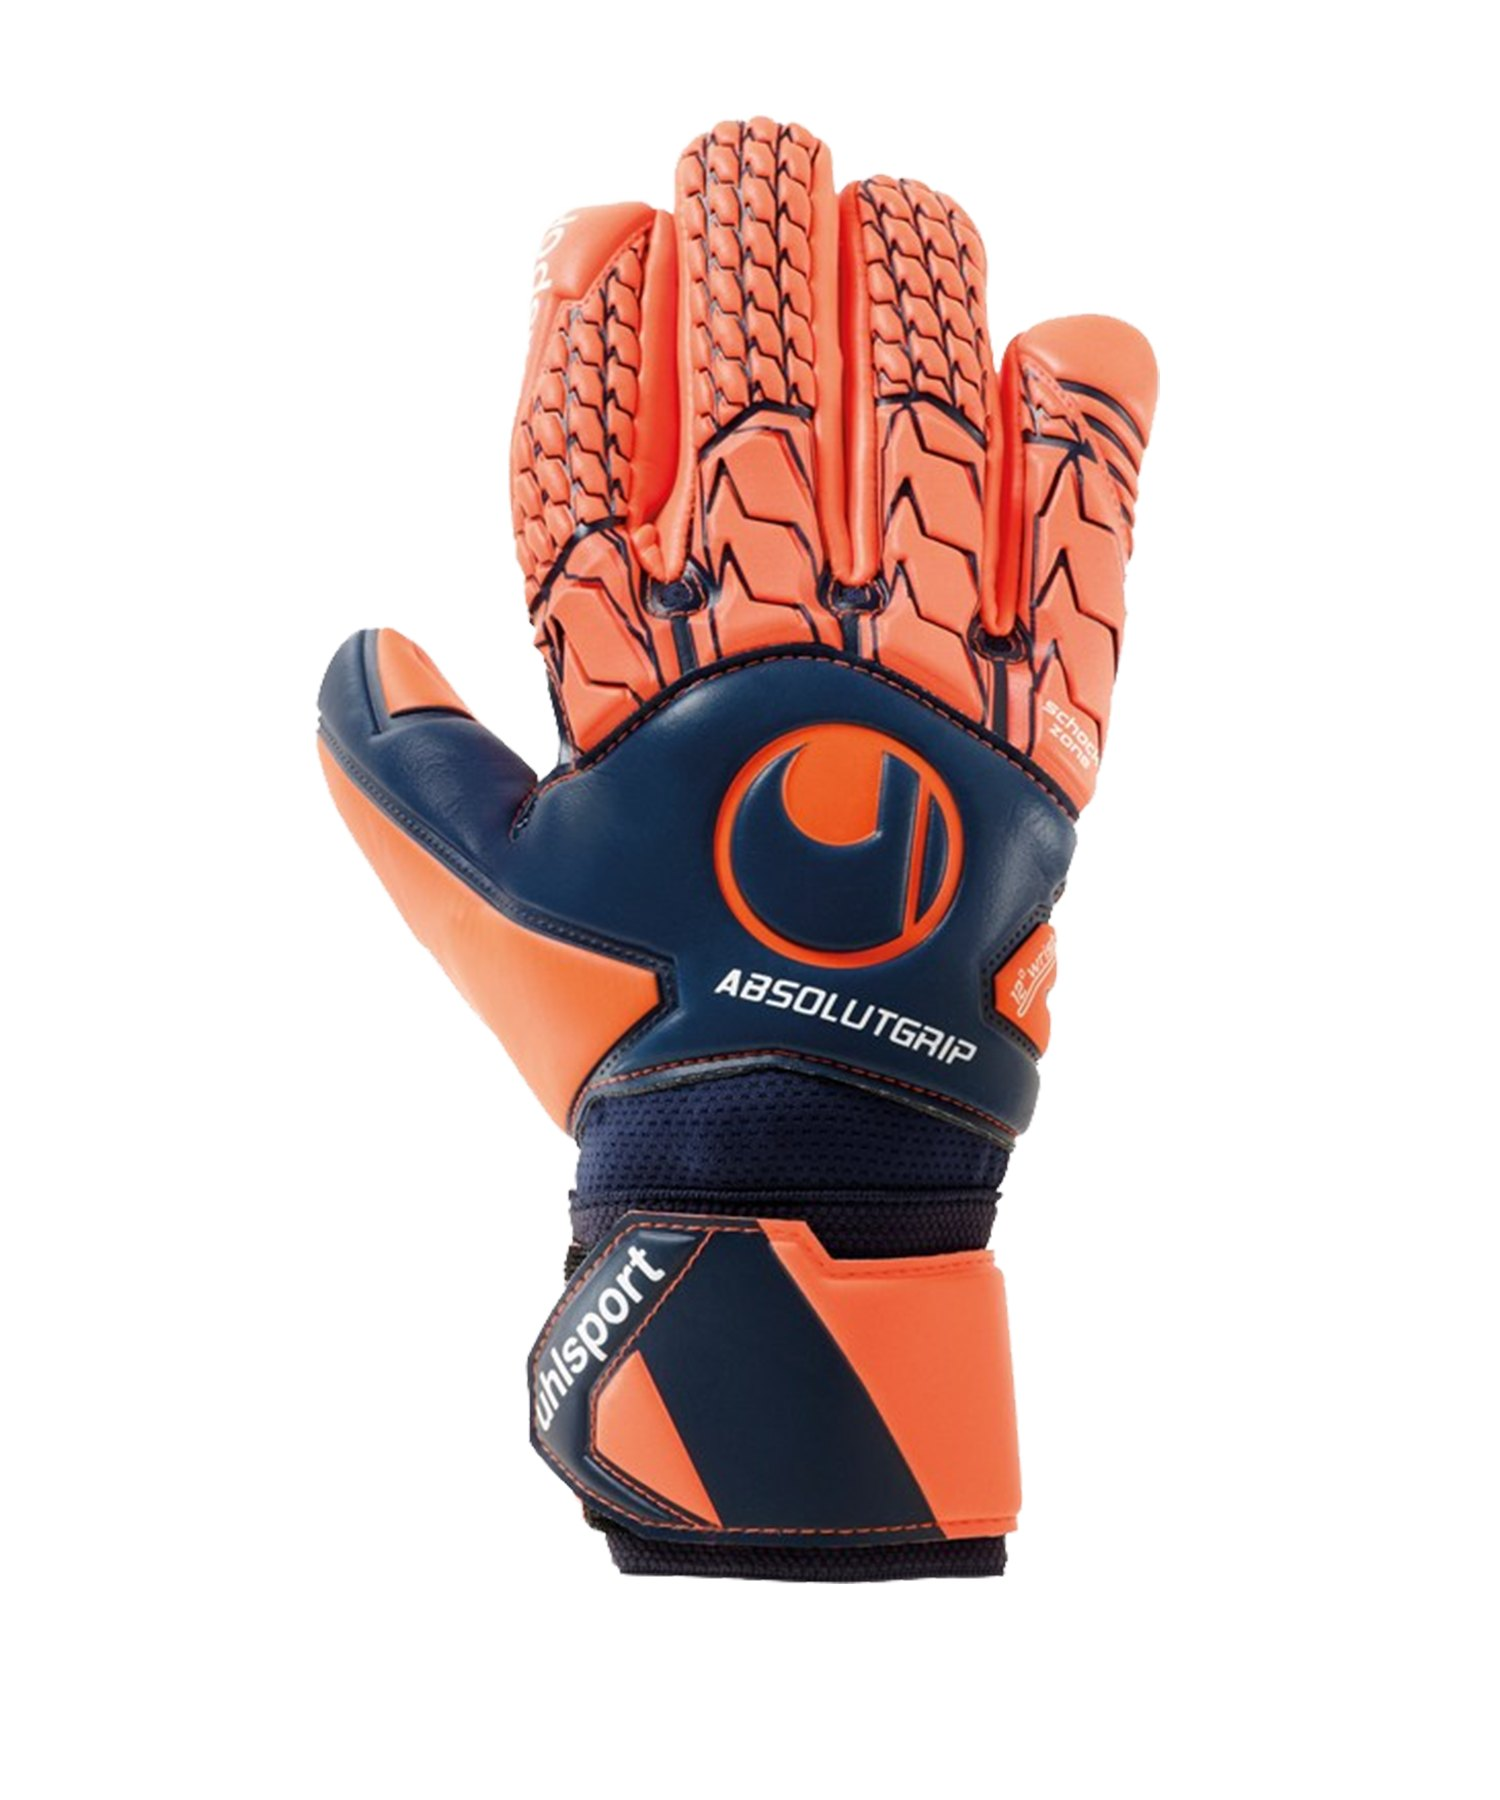 Uhlsport Next Level AG HN TW-Handschuh Orange F01 - blau